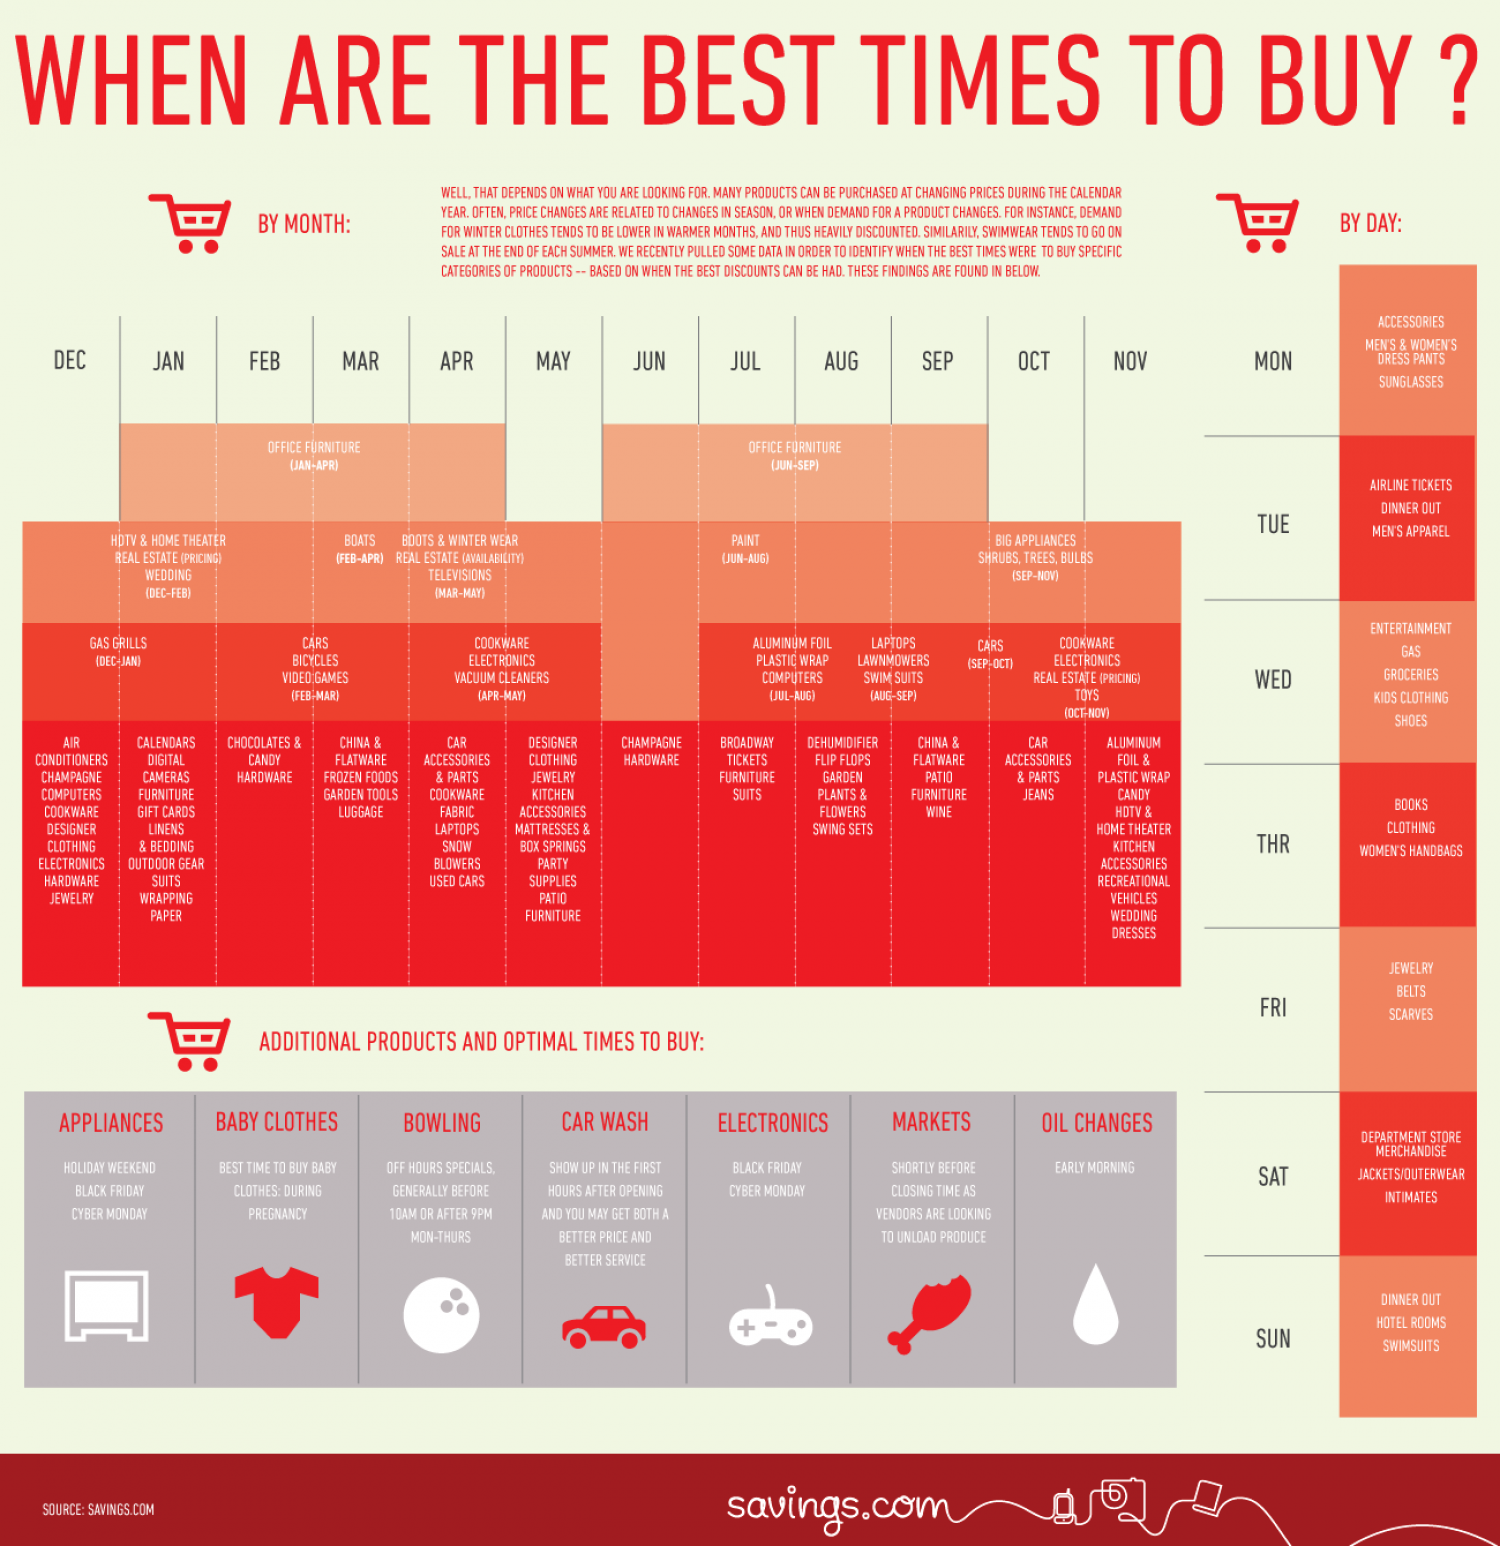 When Are the Best Times to Buy? Infographic